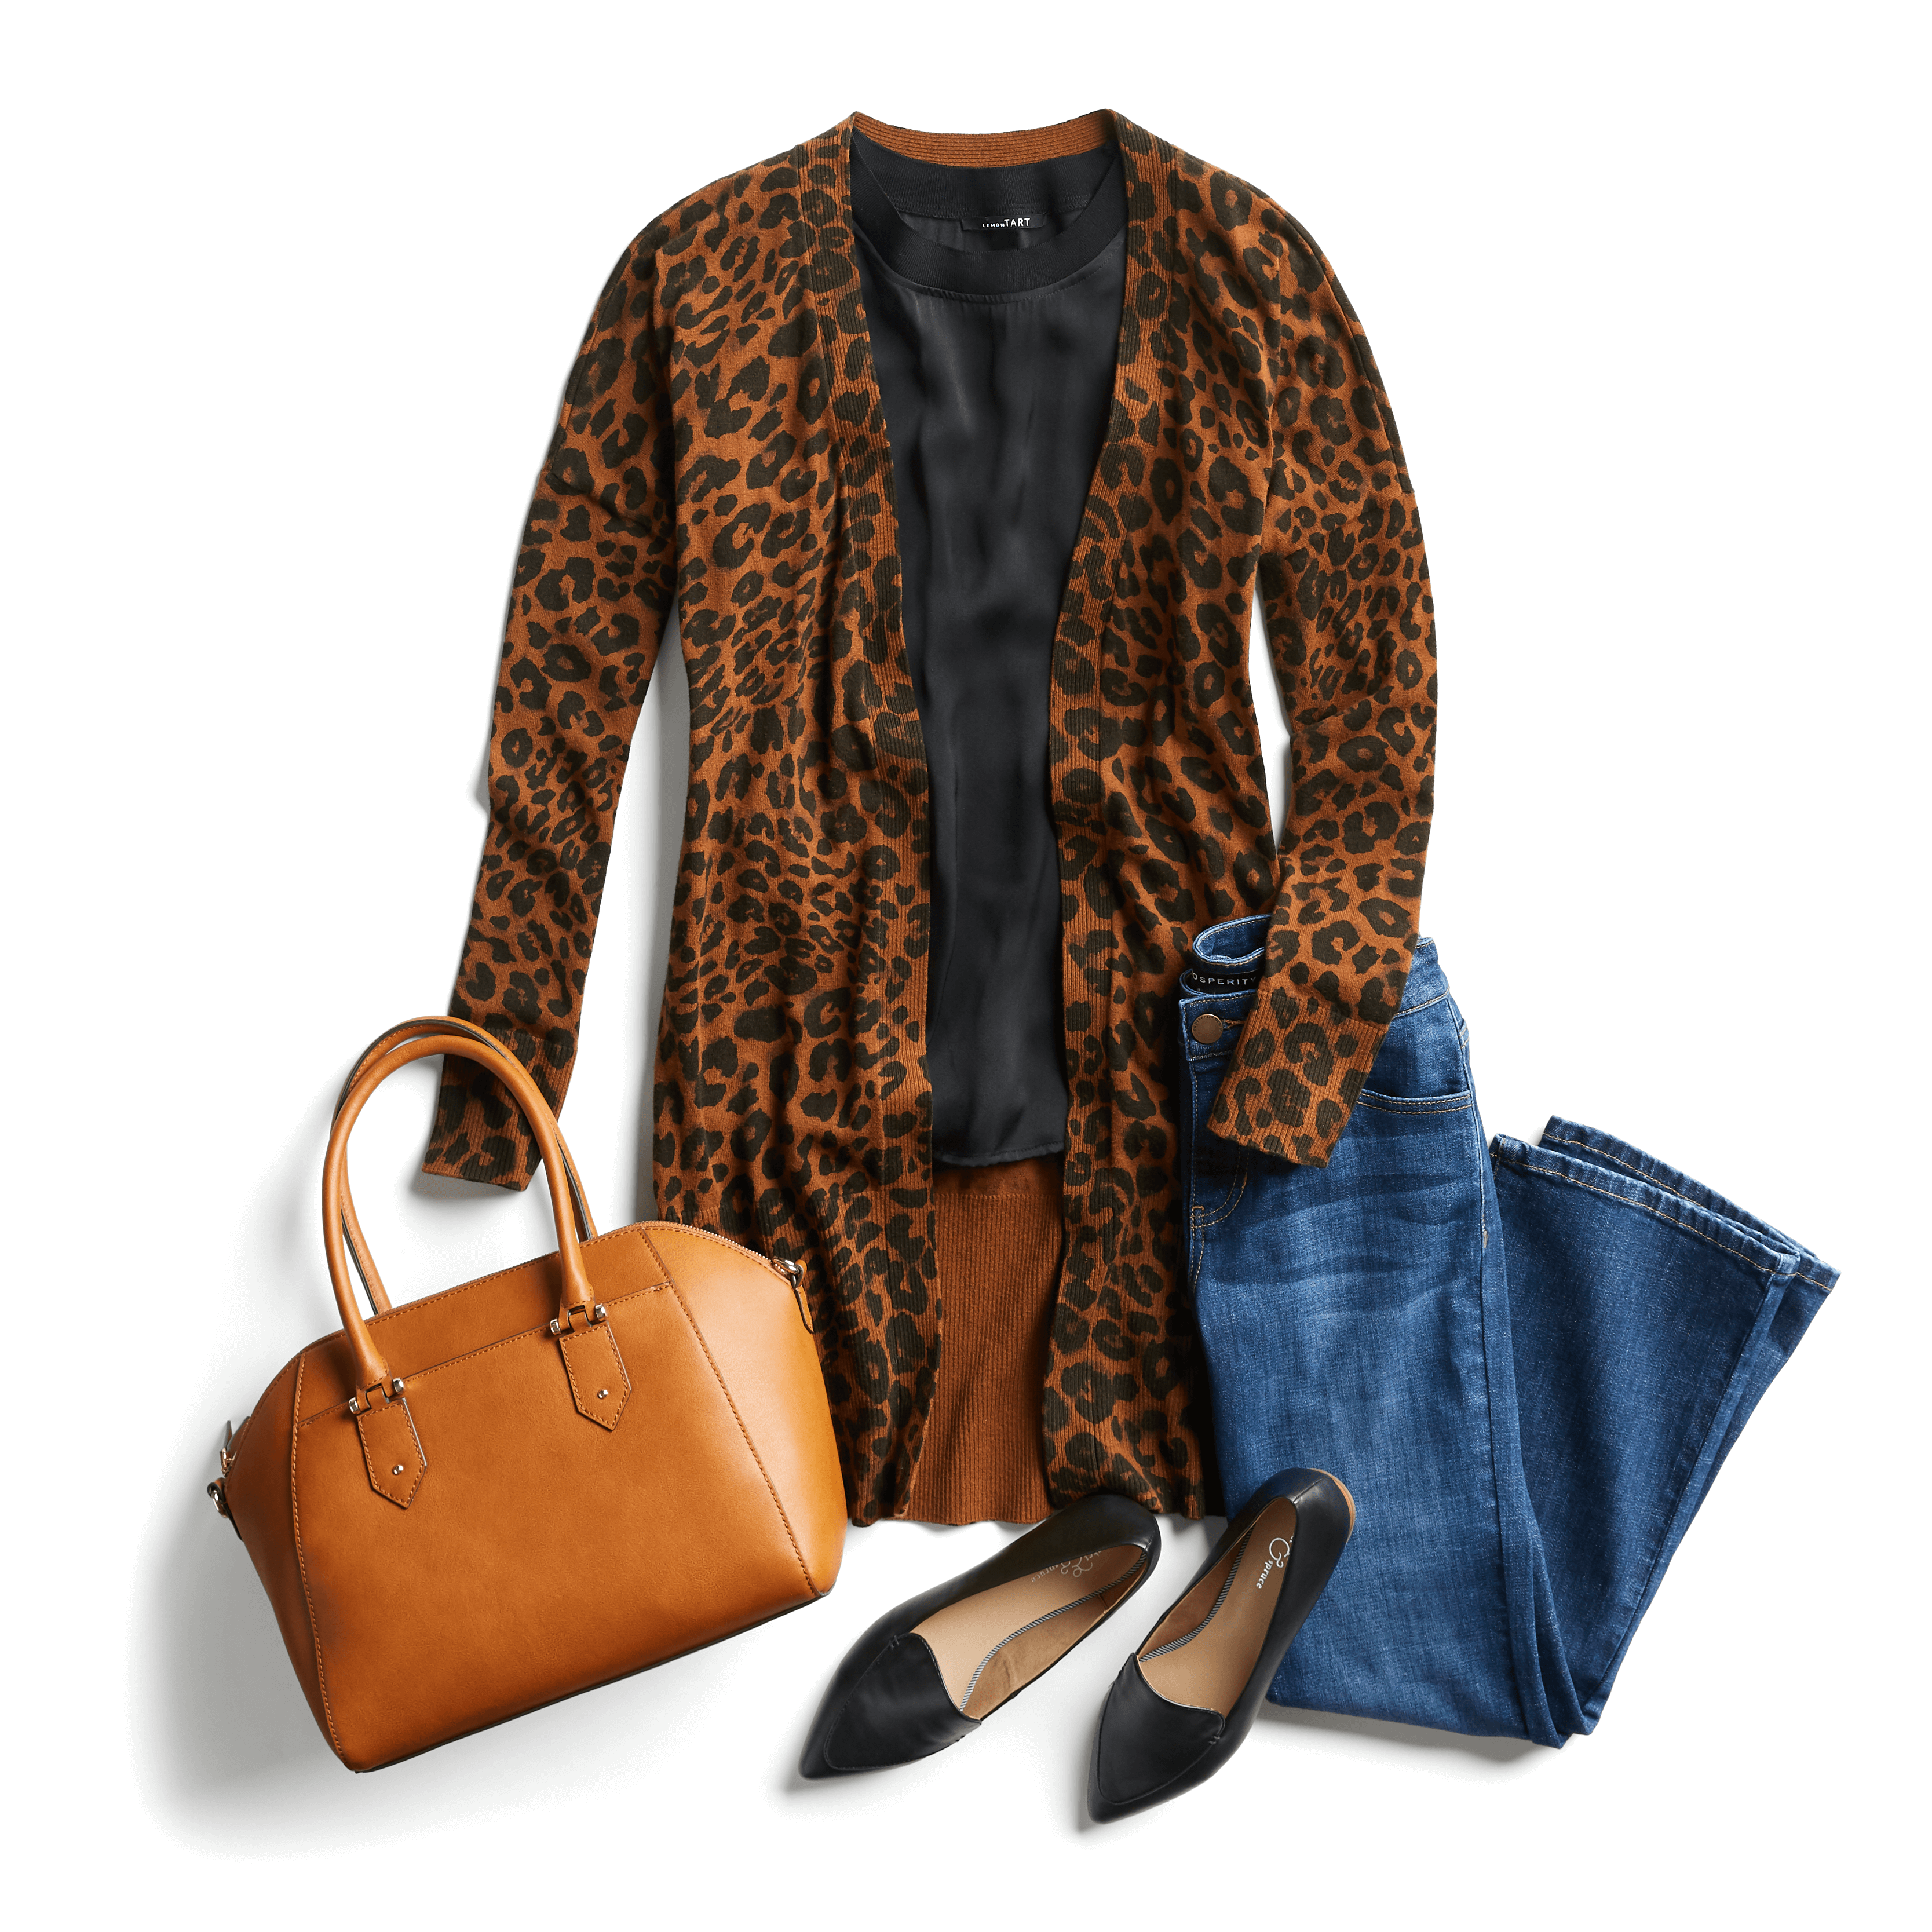 9eabf603f08a What animal prints are trendy? | Stitch Fix Style